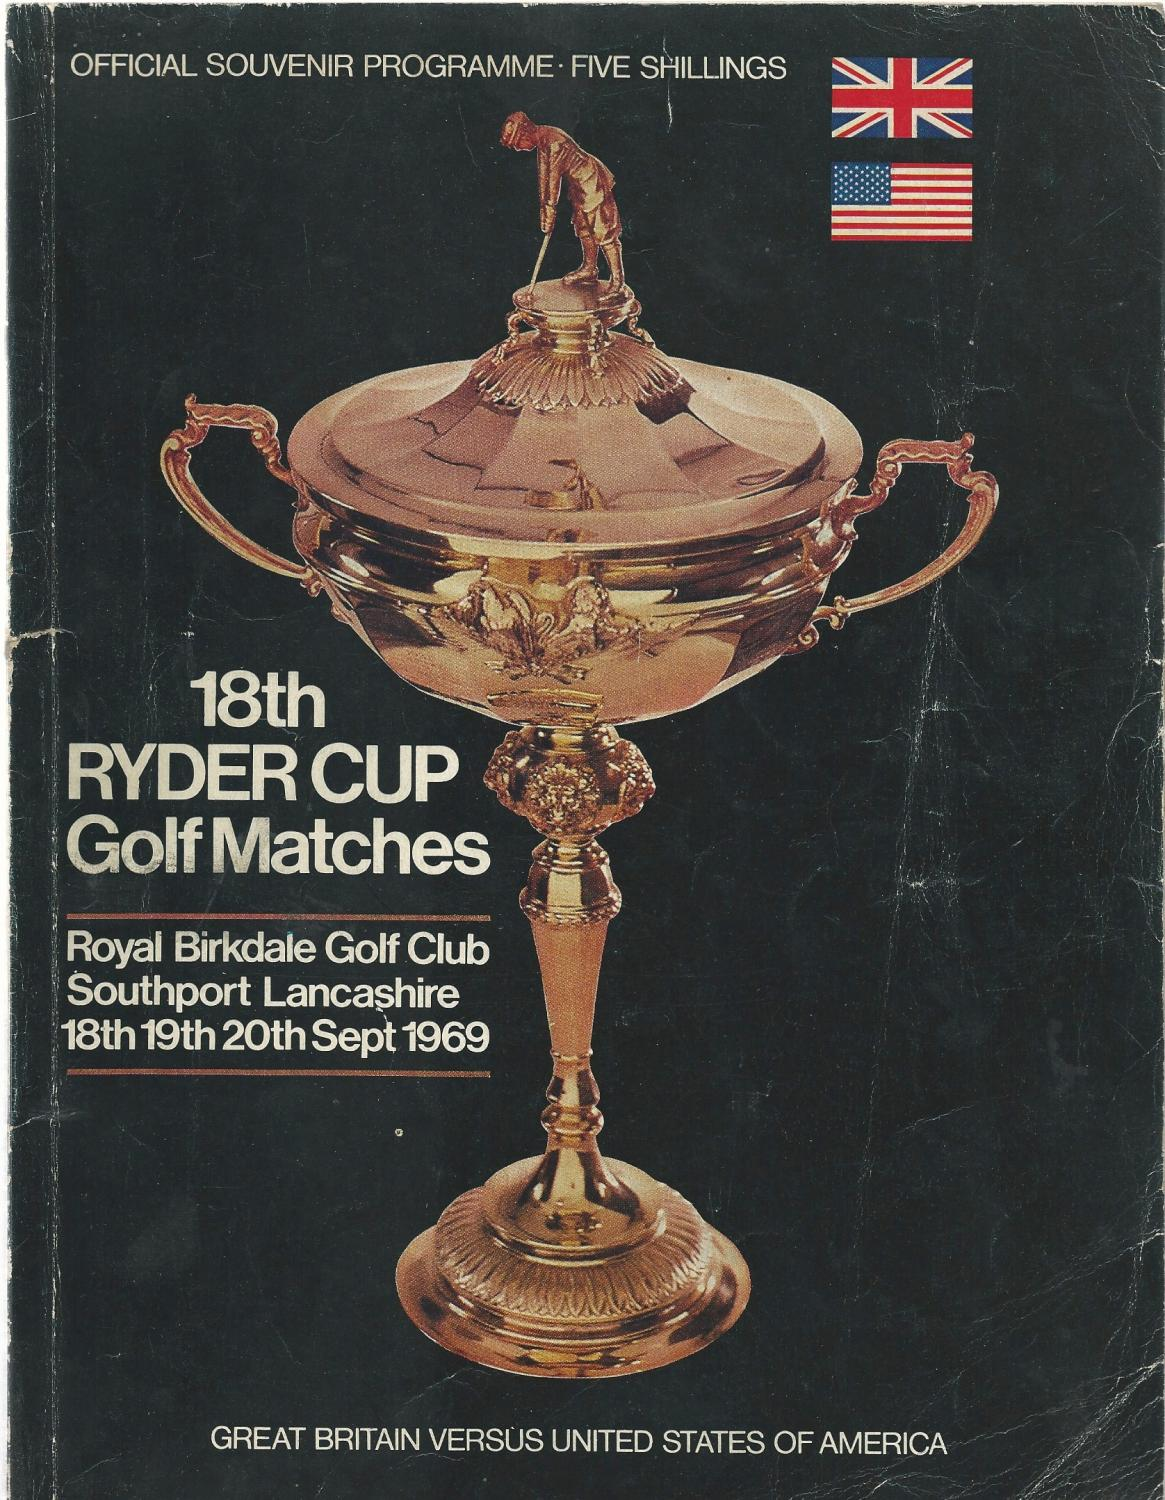 18th Ryder Cup Golf Matches. 1969. The Royal Birkdale Golf Club. Official Programme (Ryder Cup)